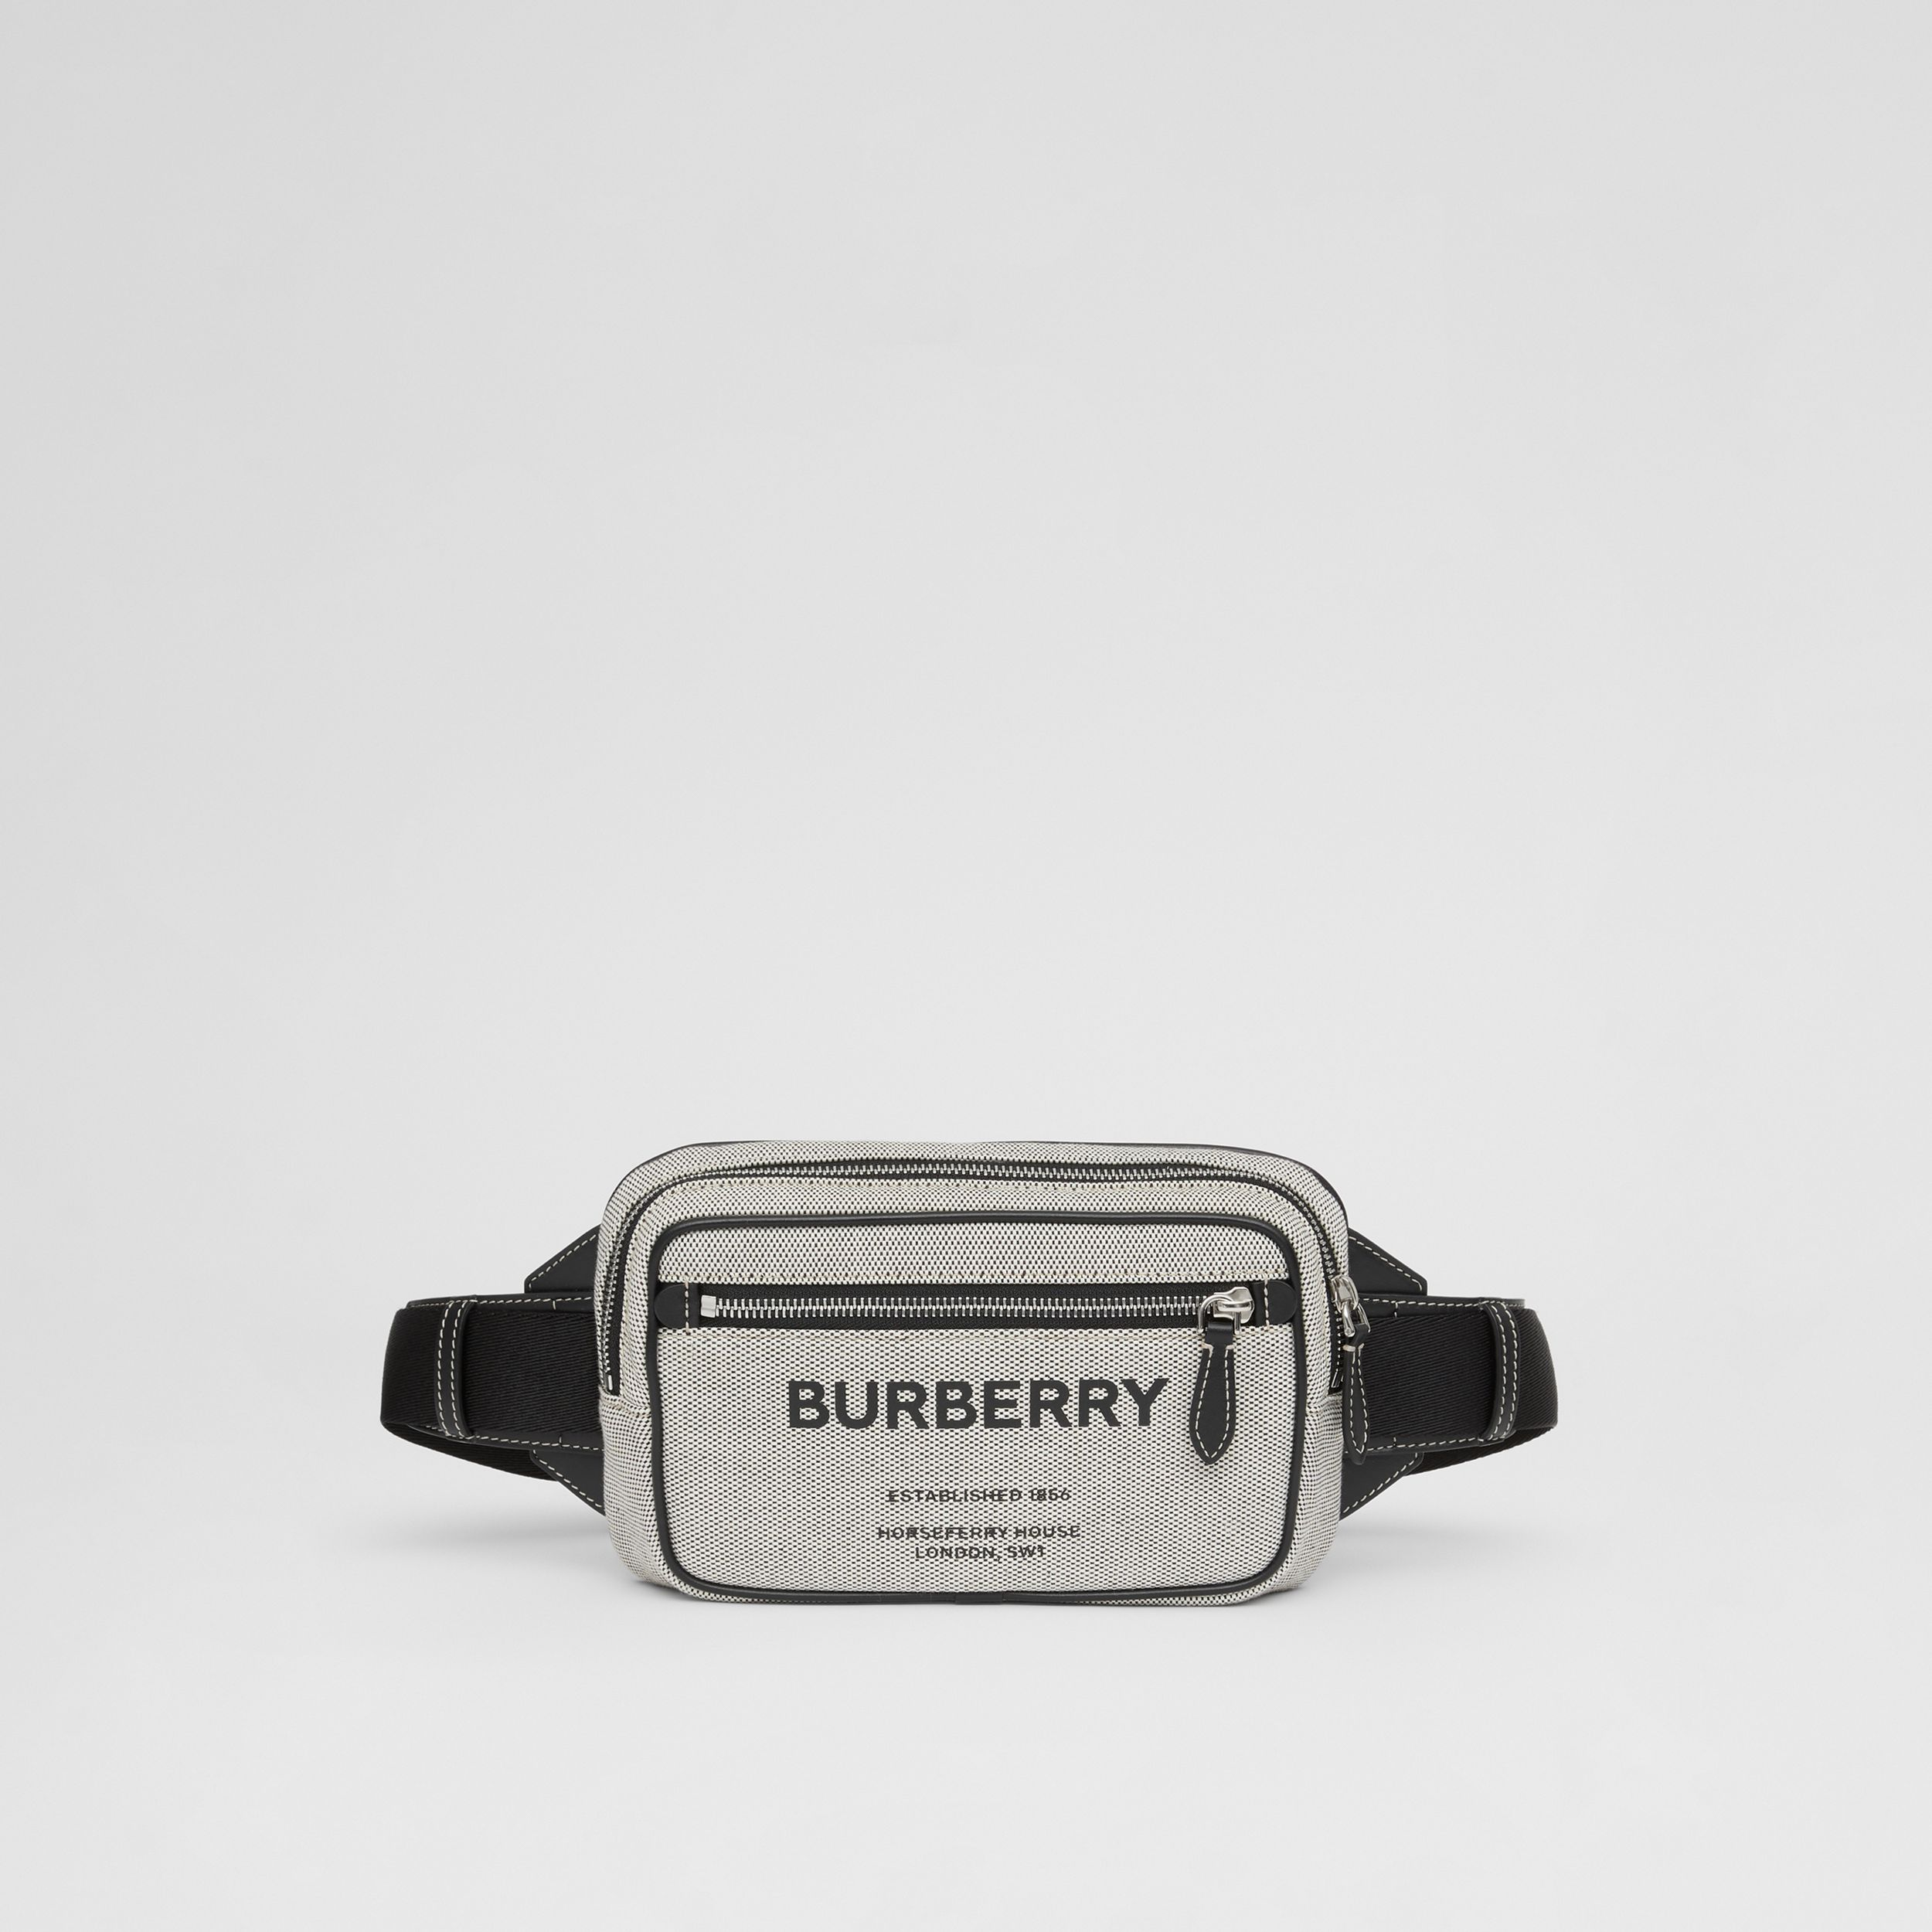 Horseferry Print Cotton Canvas Bum Bag in Black - Men | Burberry - 1